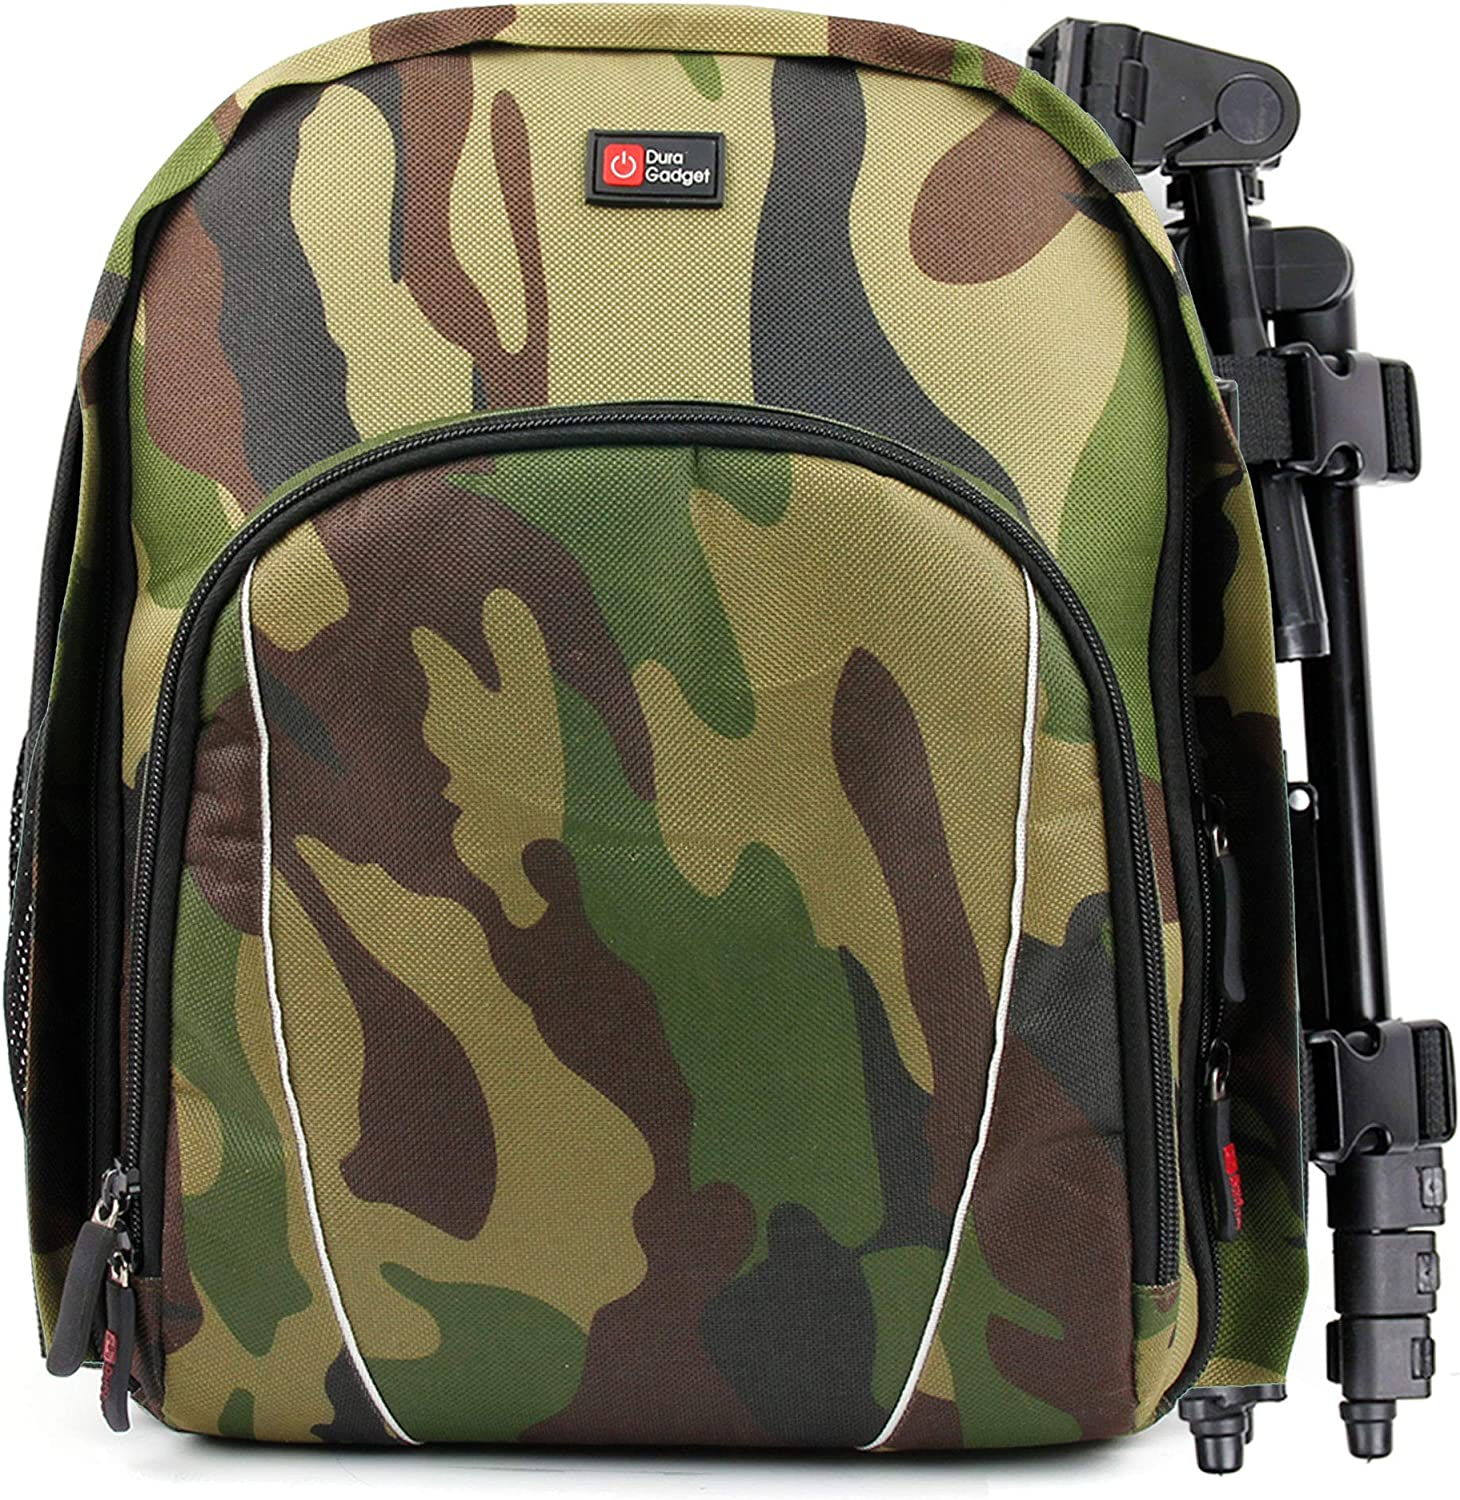 DURAGADGET Camouflage Backpack w/Customizable Interior & Raincover - Compatible with Xiaomi Mi Notebook Air 12.5-Inch & Mi Notebook Air 13.3-Inch